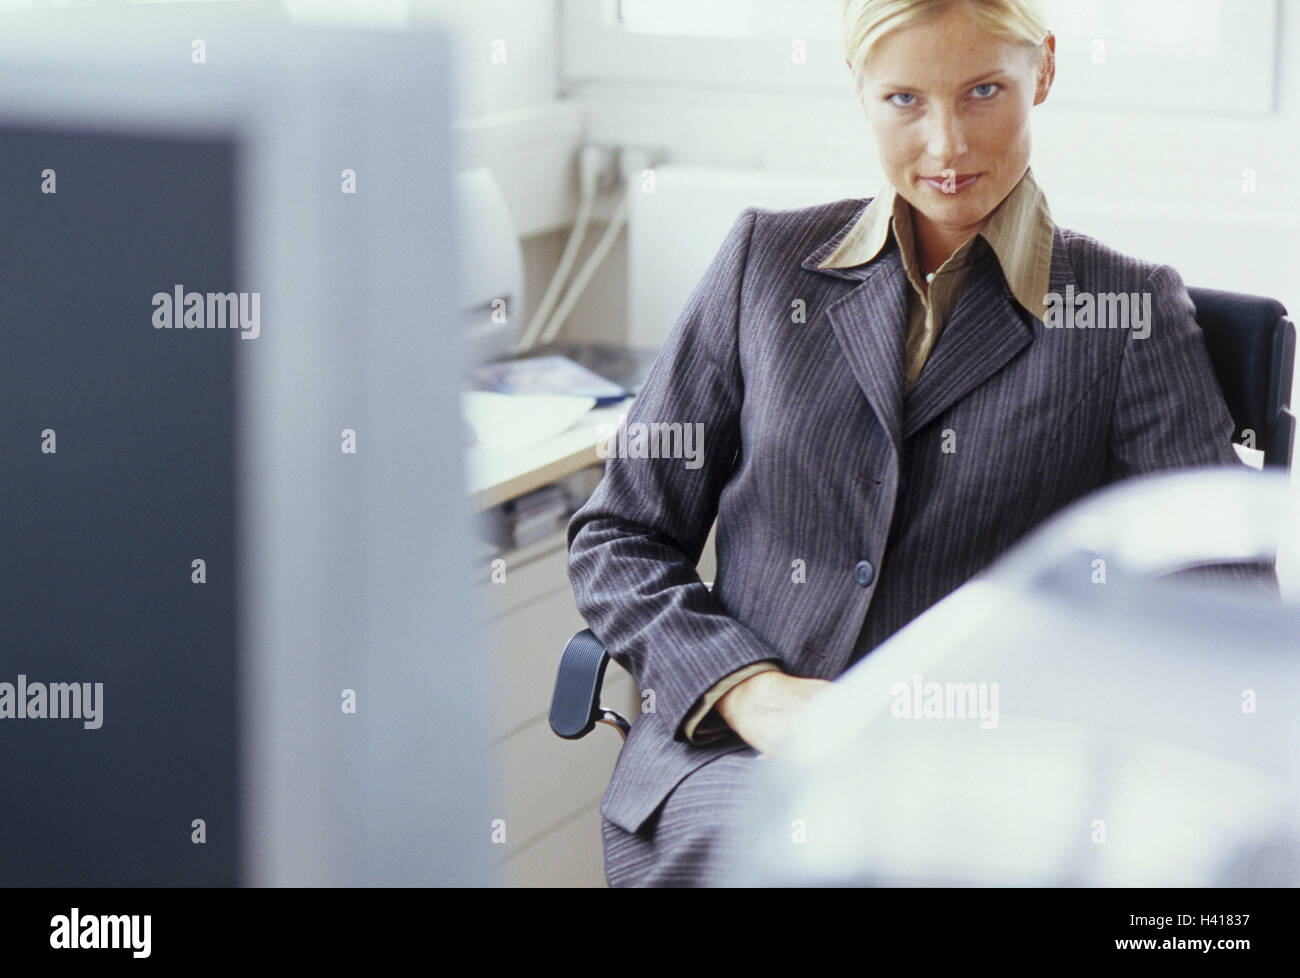 Office, chair, manager, erwatungsvoll, portrait, blur women's portrait, woman, businesswoman, office workers, - Stock Image